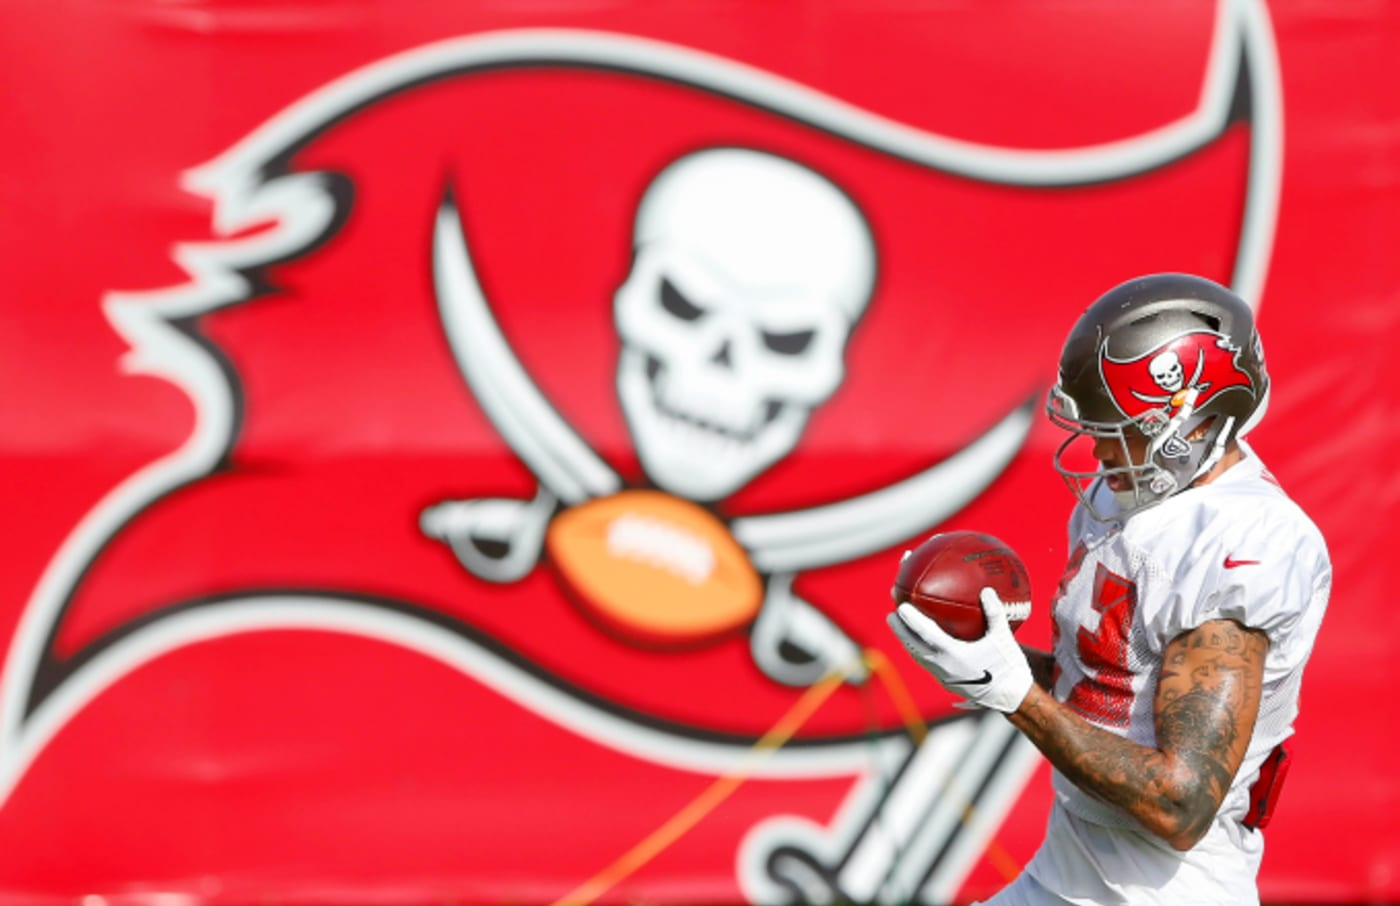 Mike Evans (13) makes a catch in front of the Bucs logo